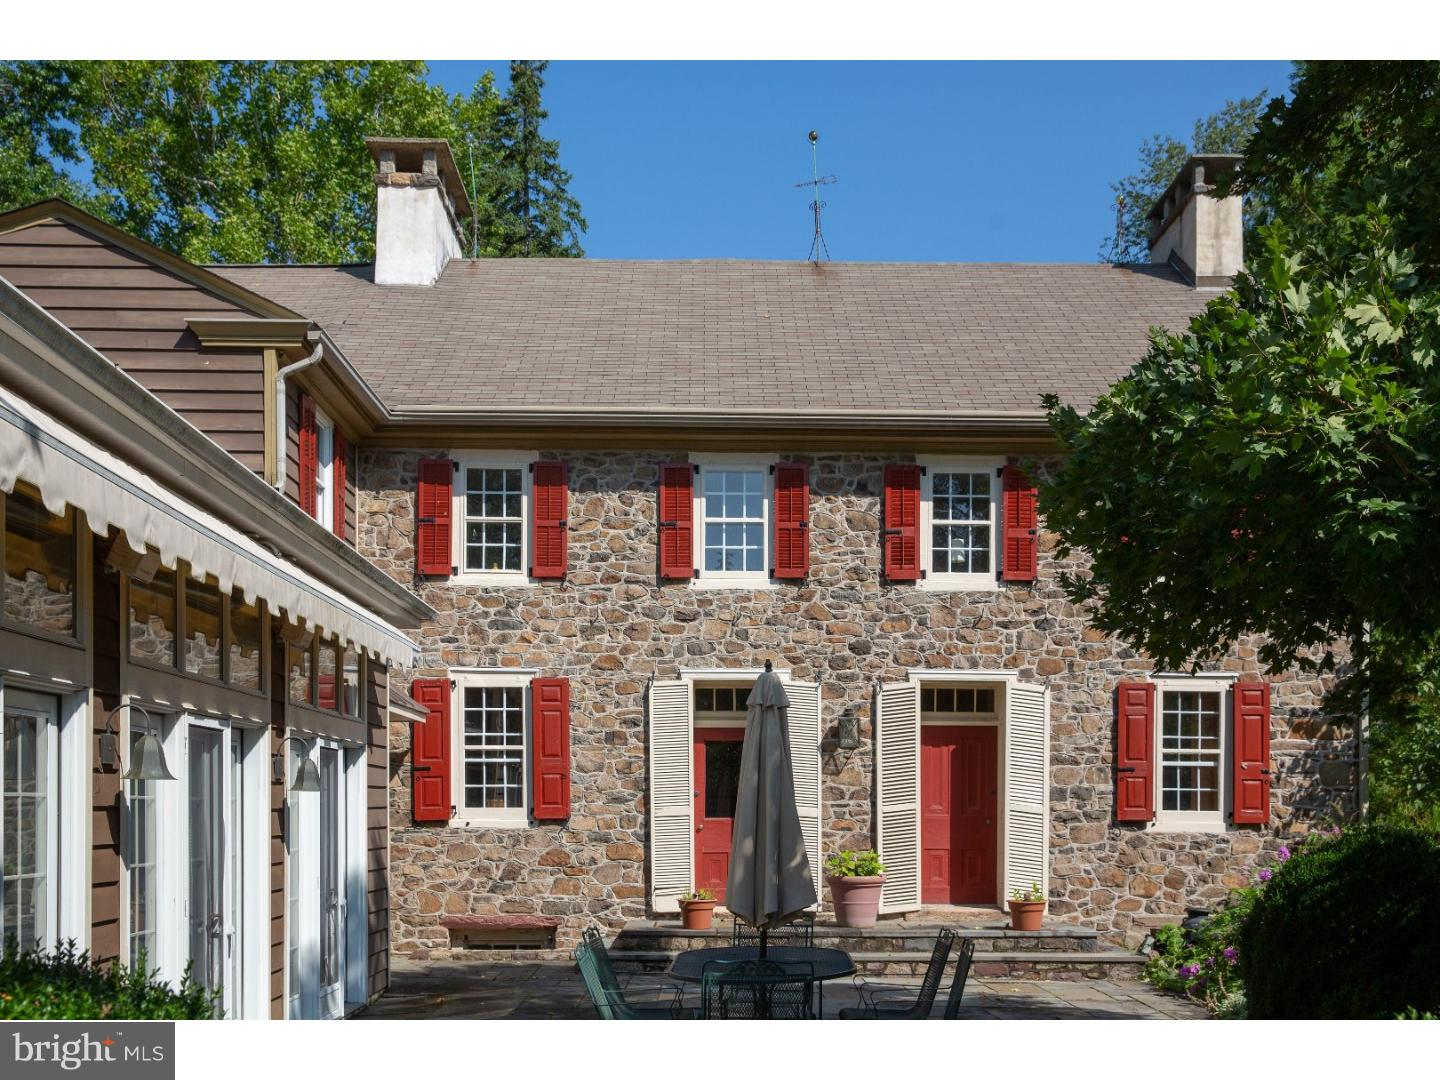 Single Family Home for Sale at 6266 PIDCOCK CREEK Road Solebury Township, Pennsylvania 18938 United StatesMunicipality: Solebury Township